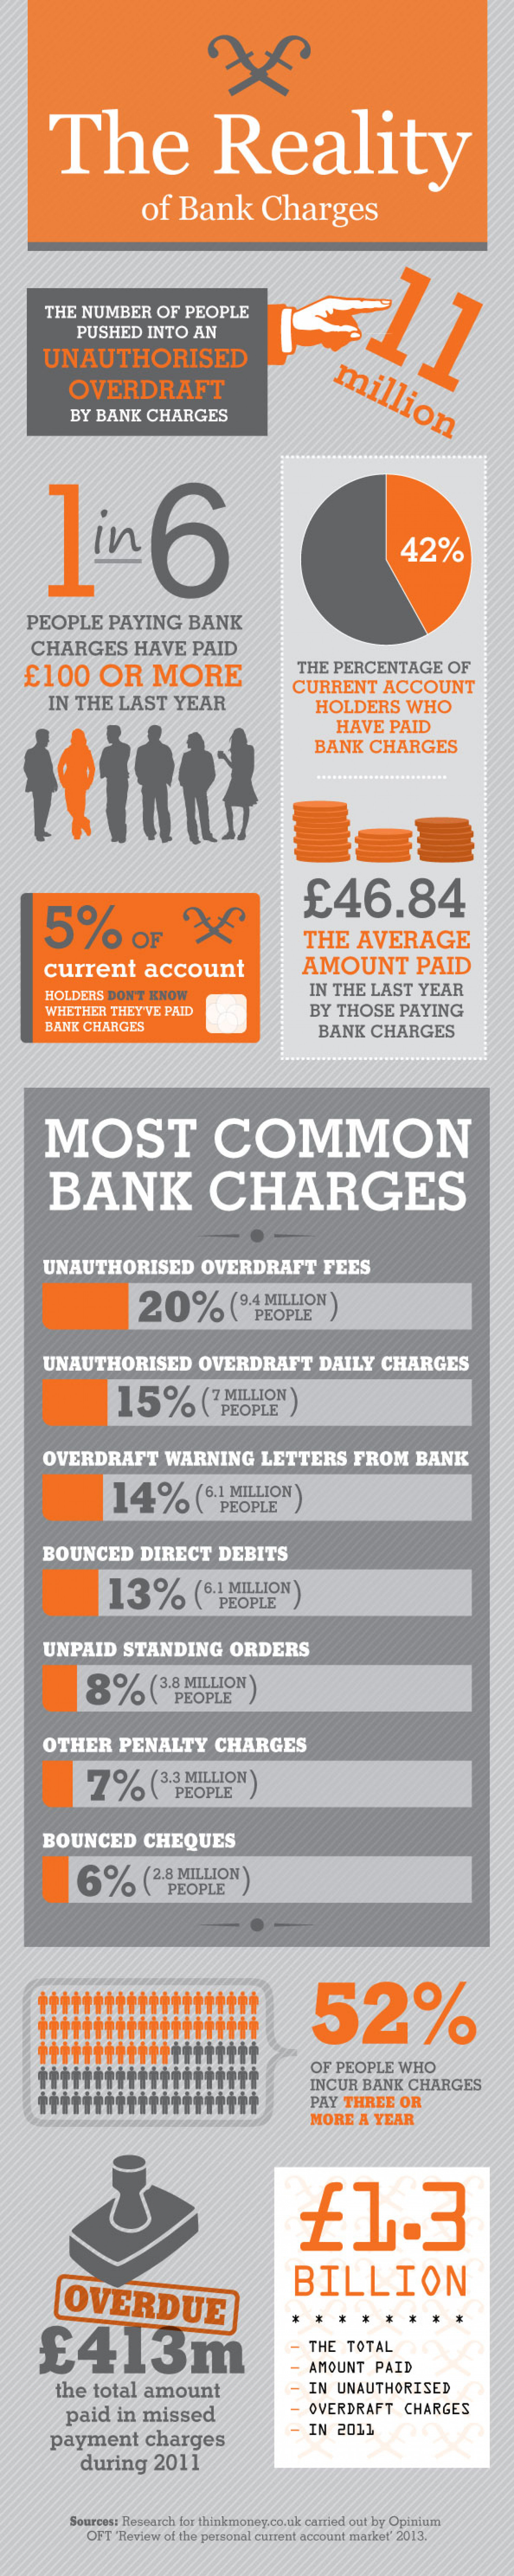 The Reality of Bank Charges Infographic